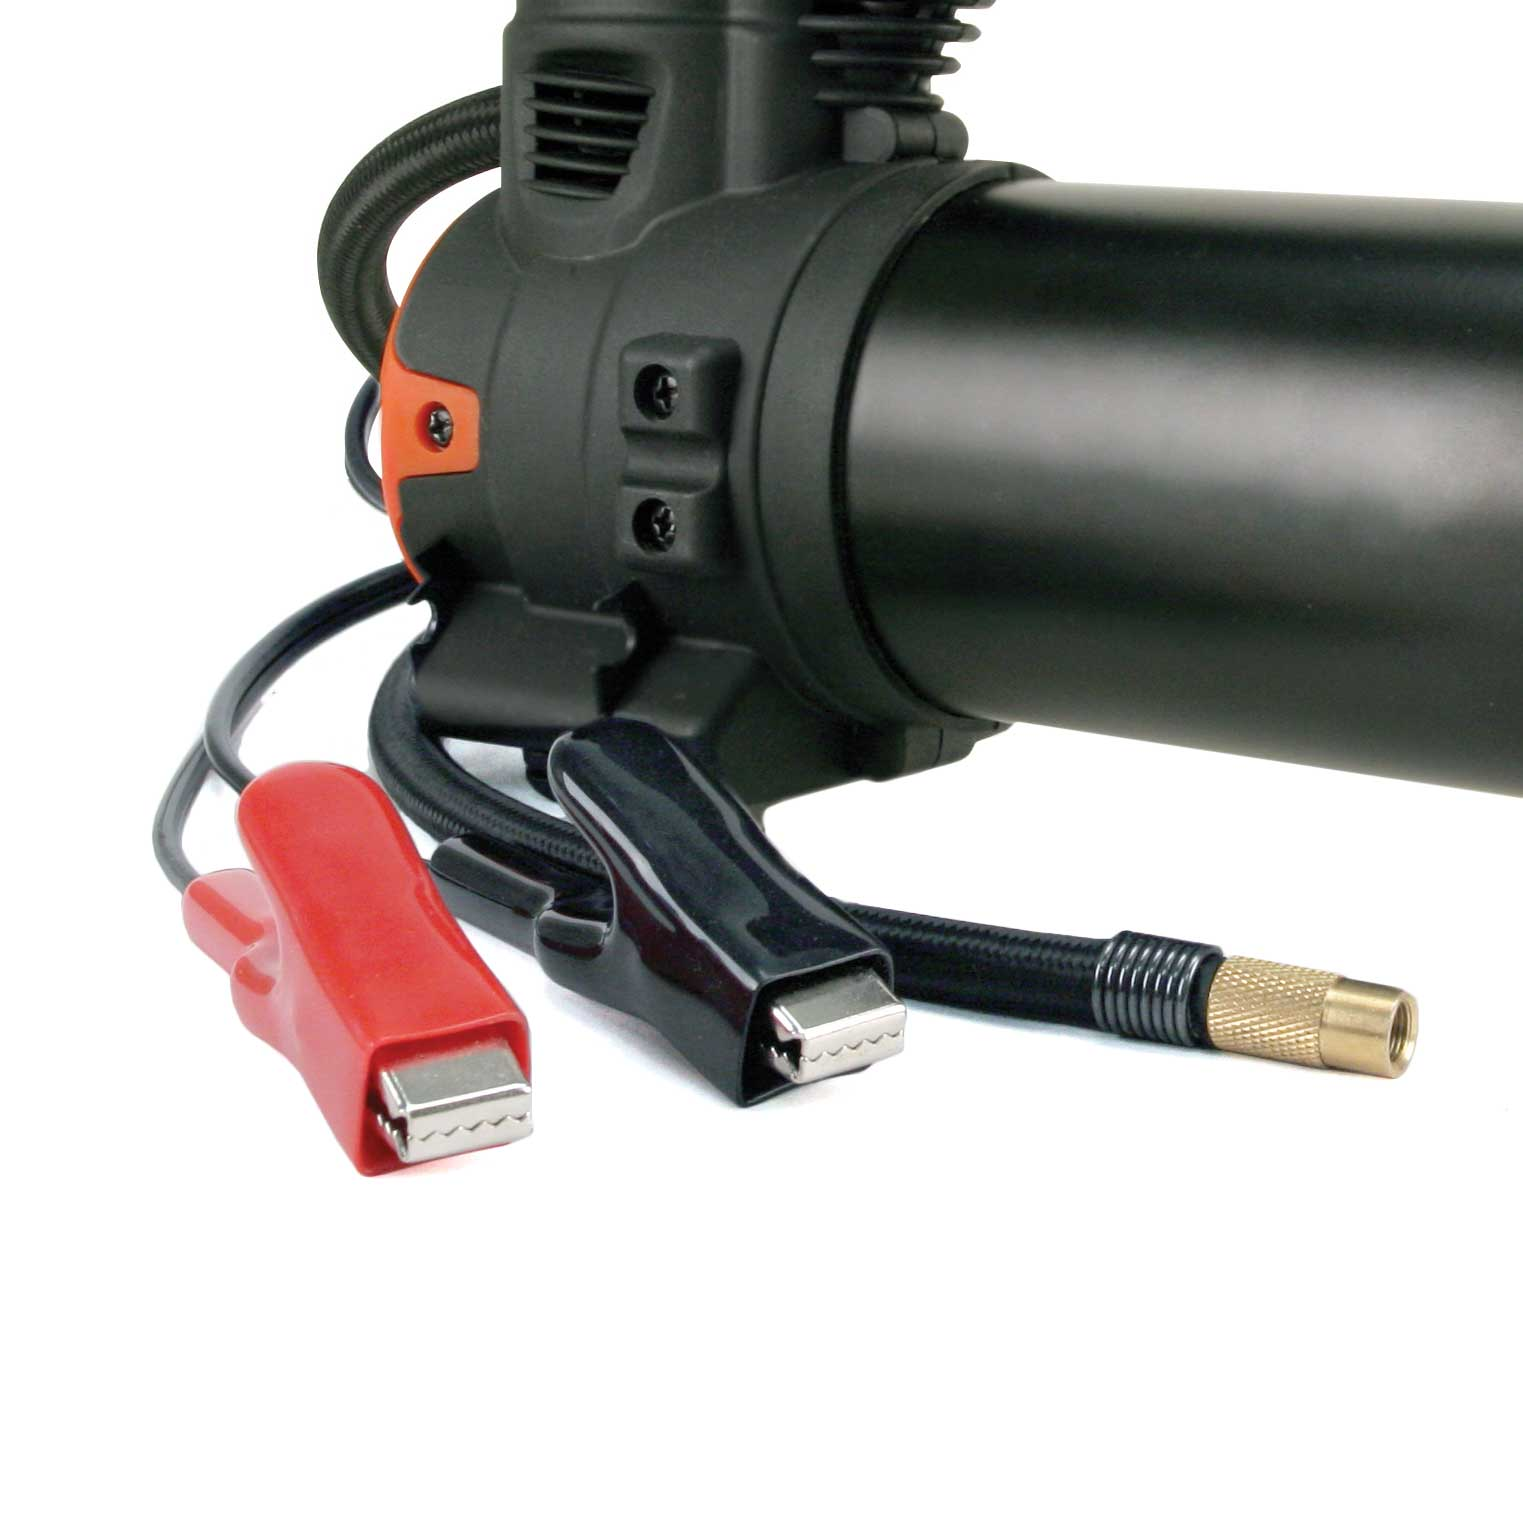 Viair 87p Portable Compressor Kit W Power Cord With